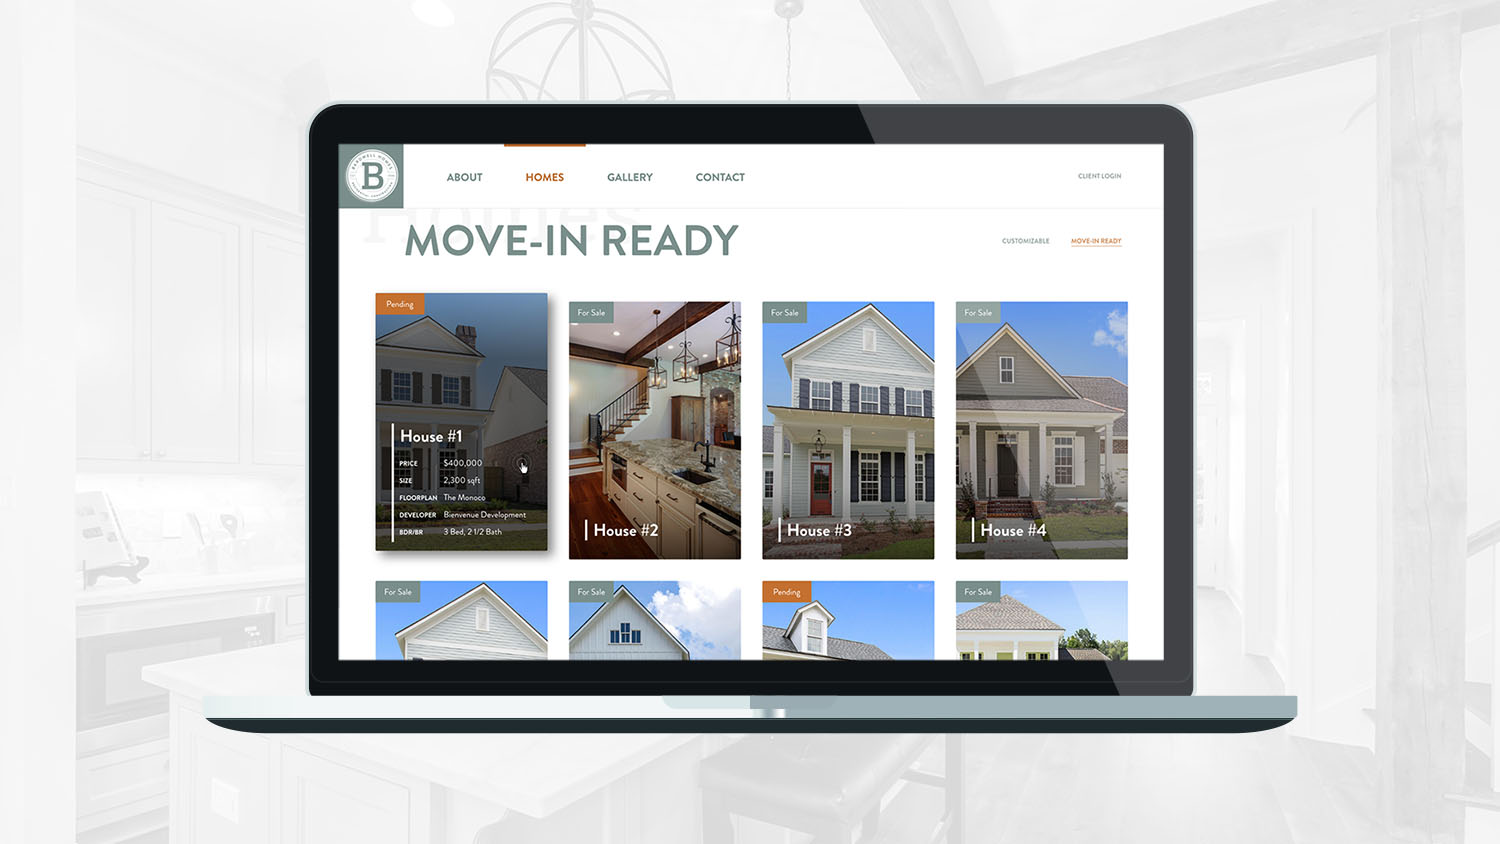 Bardwell Homes | Website Move-In Ready Homes